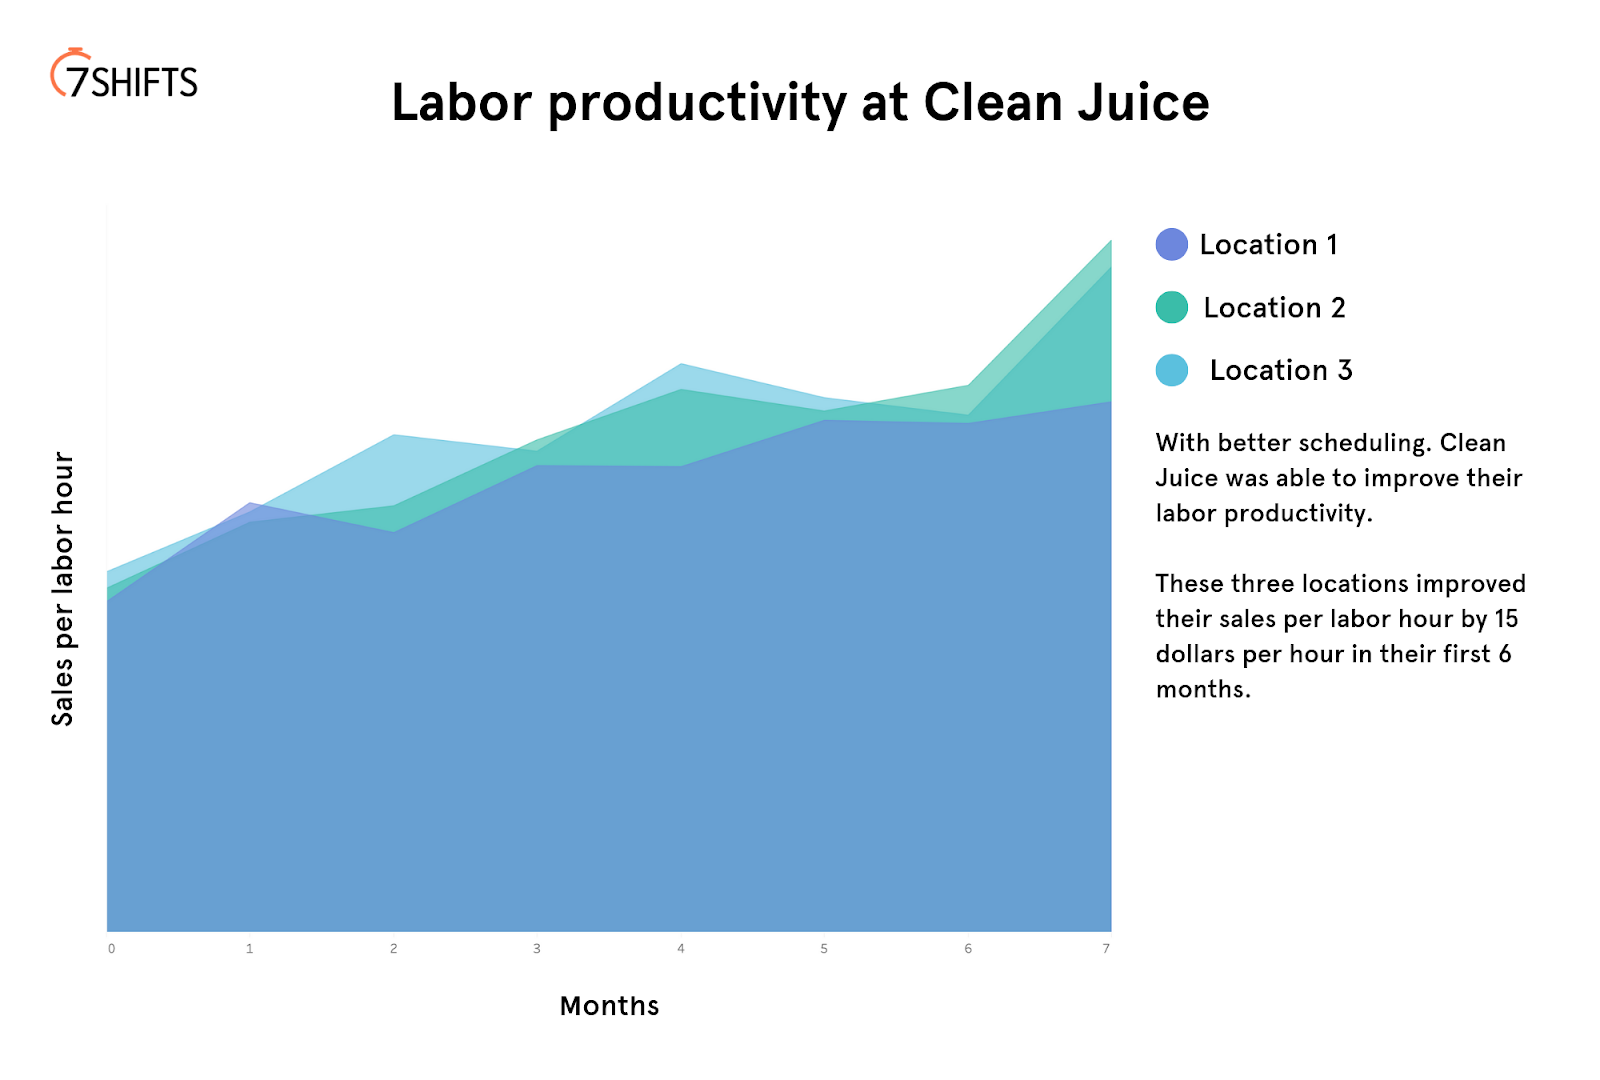 Graph to show increased labor productivity at Clean Juice